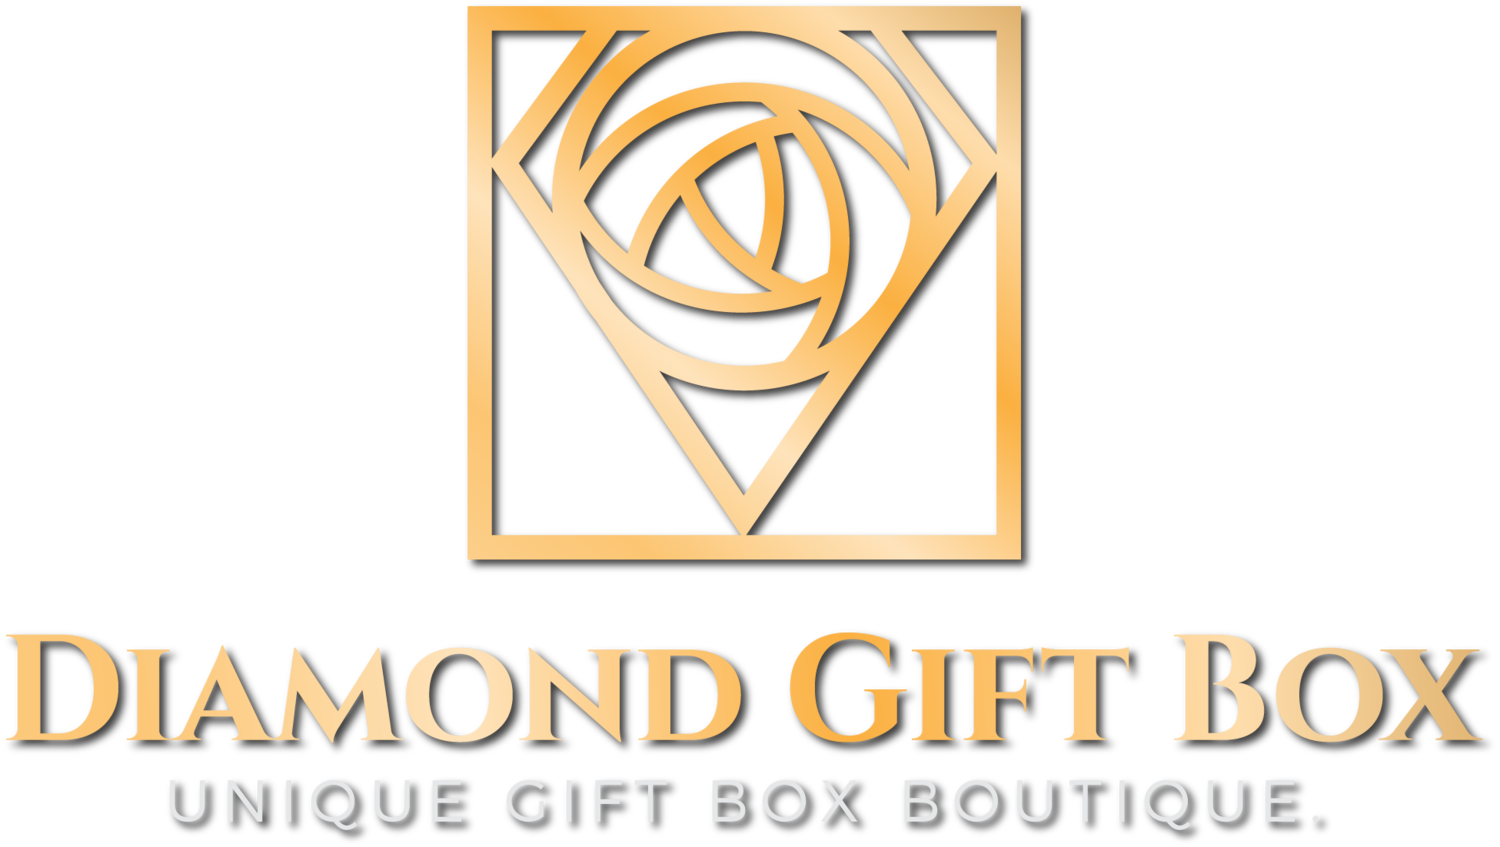 Diamond Gift Box